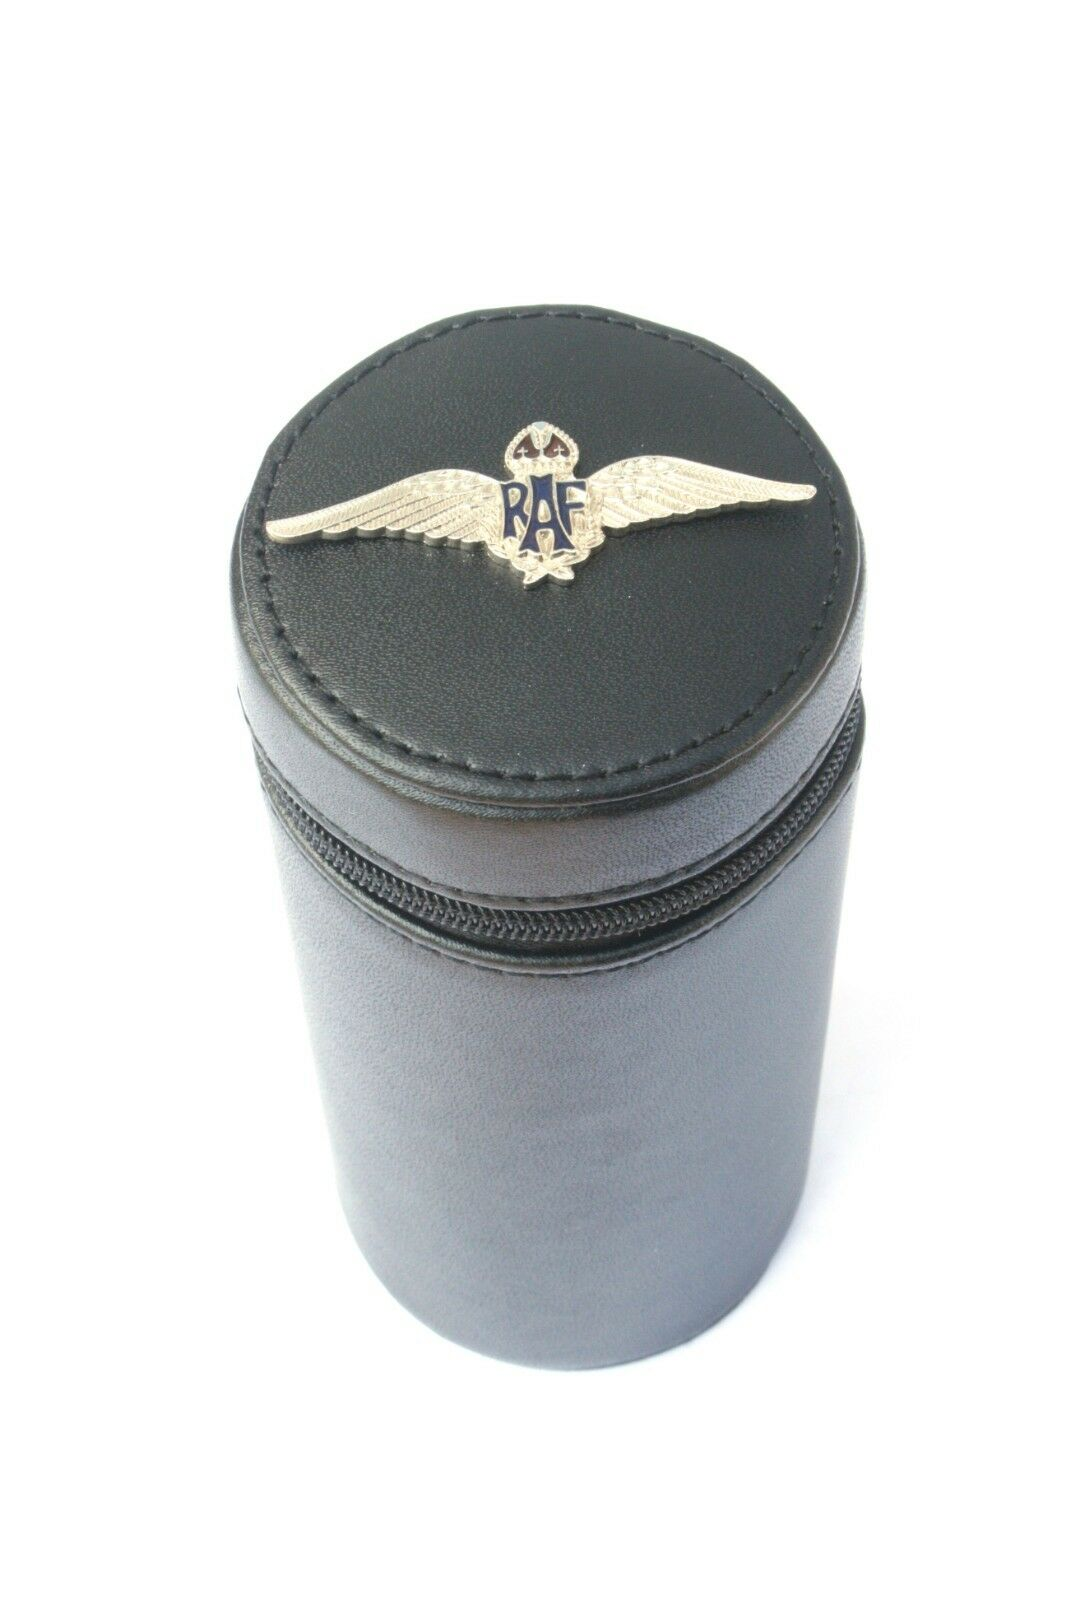 RAF Sweetheart Shooting Peg Position Finder Numberojo Cups 1-10 negro Leather